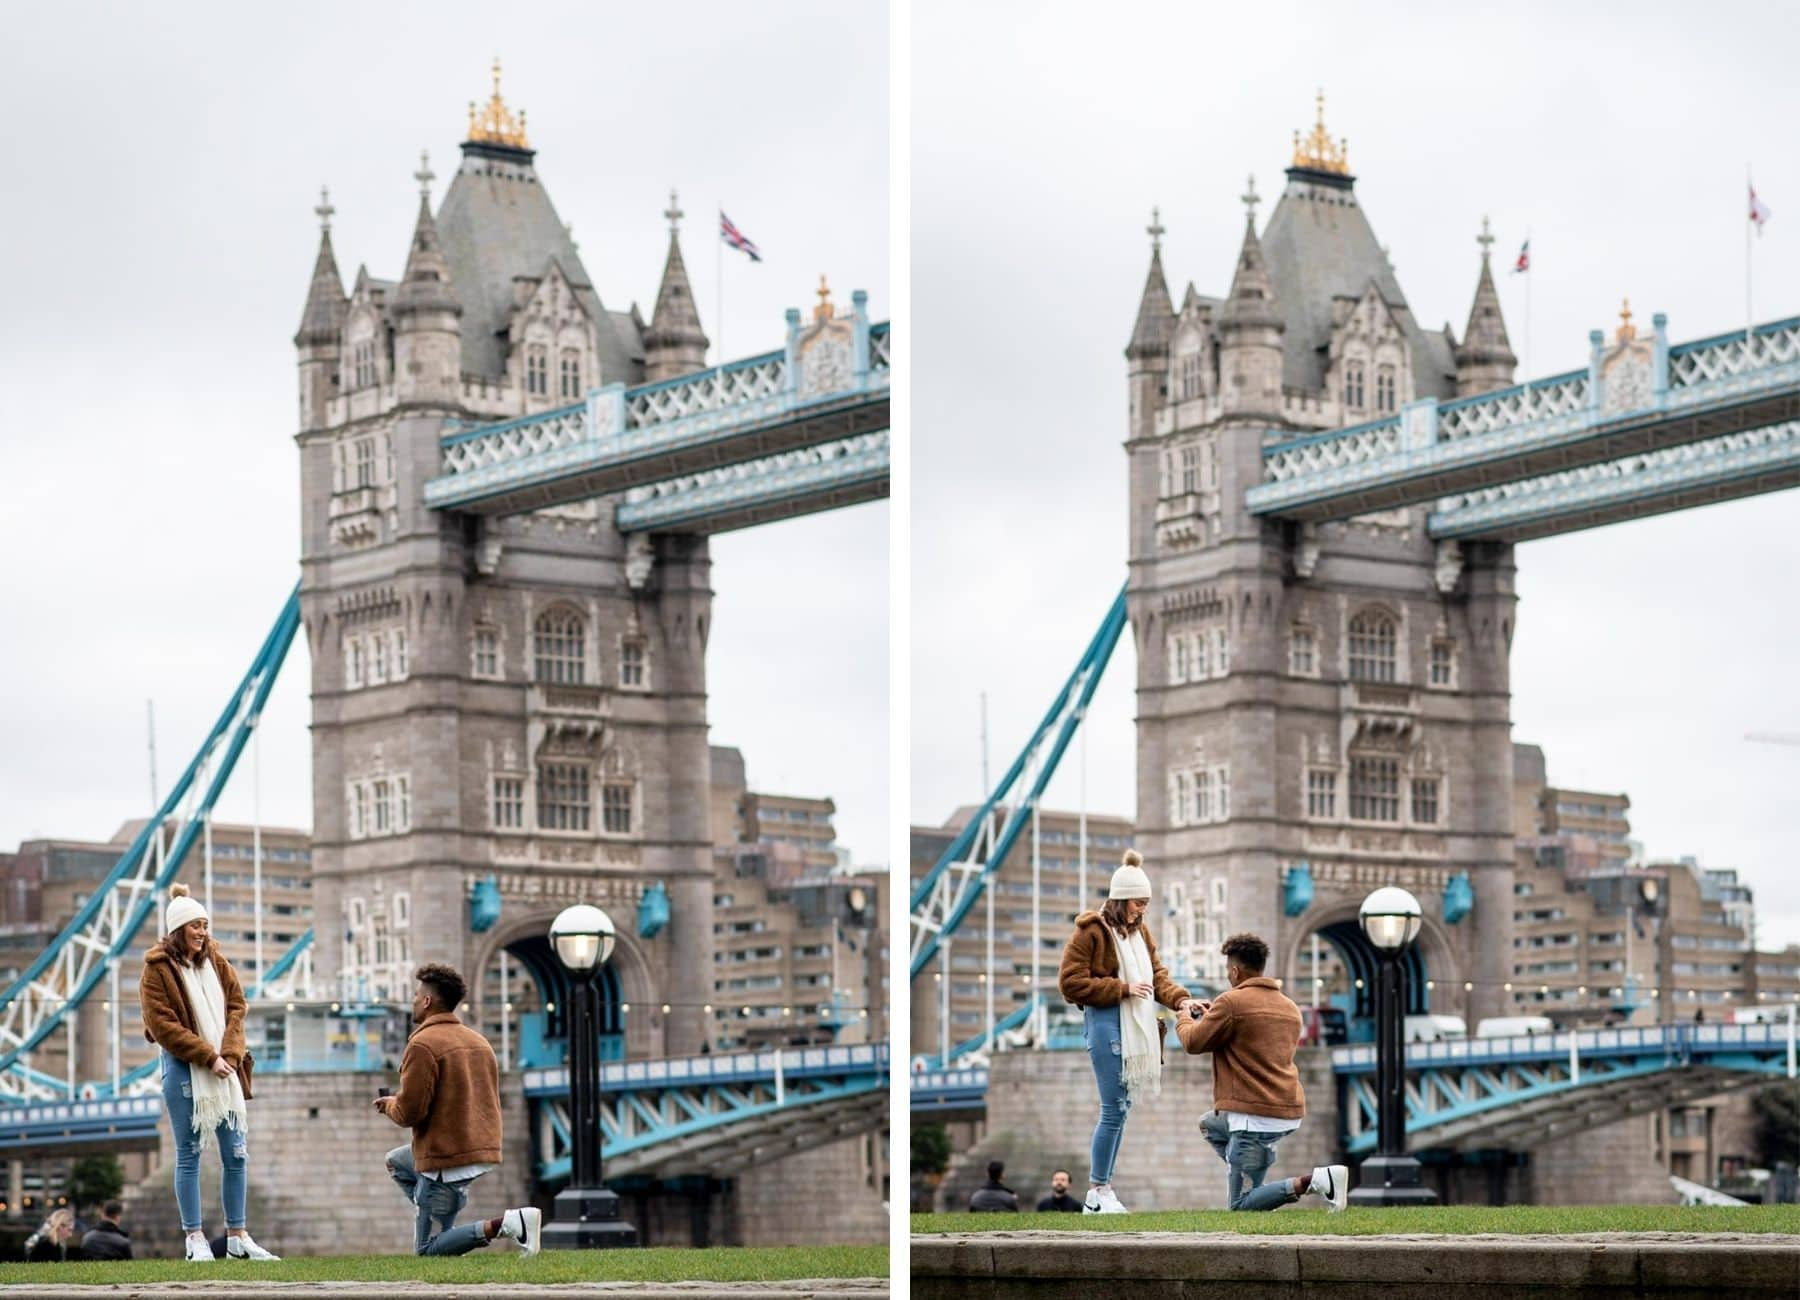 Man proposing to his girlfriend in front of Tower Bridge in London. She said yes